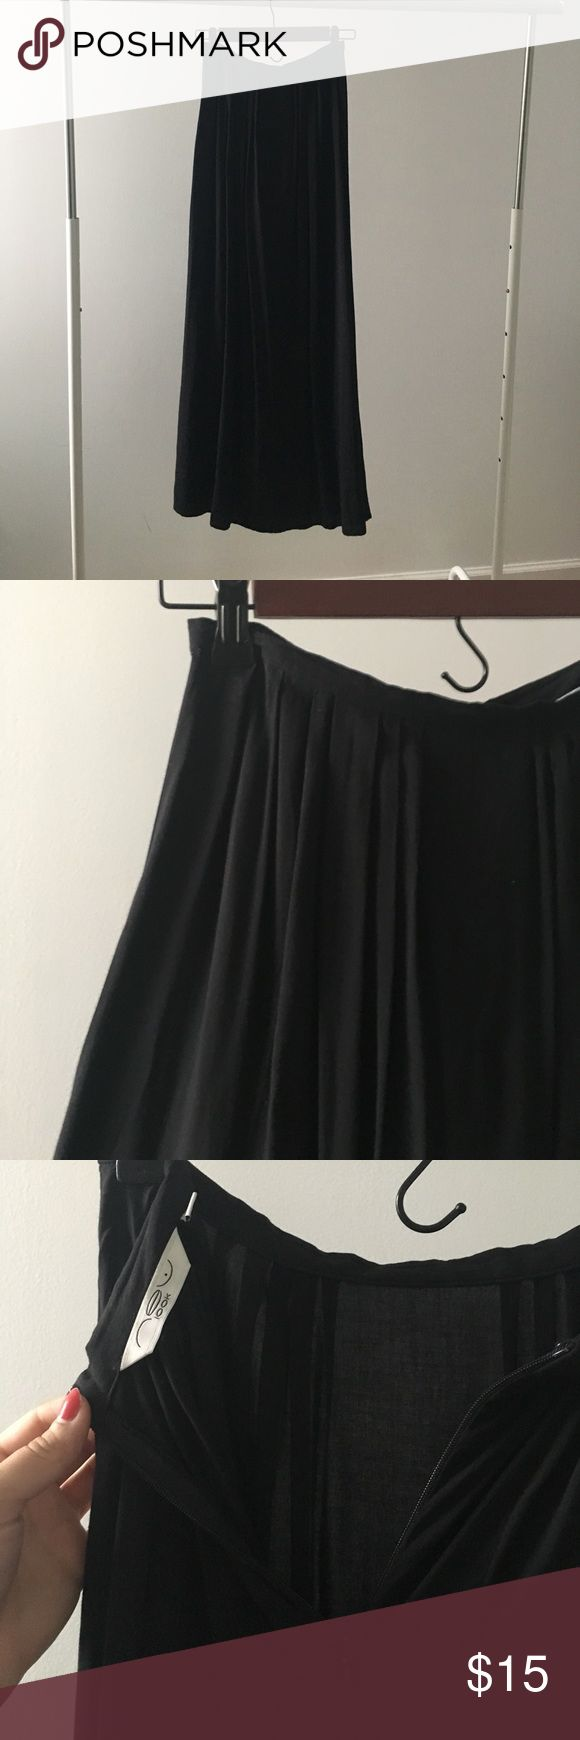 New Look high waisted maxi skirt This is a black New Look high waisted maxi skirt with invisible zipper in back. Length 40in from waist. Note it says it's a size 6 but it fits like a size 2. New Look Skirts Maxi